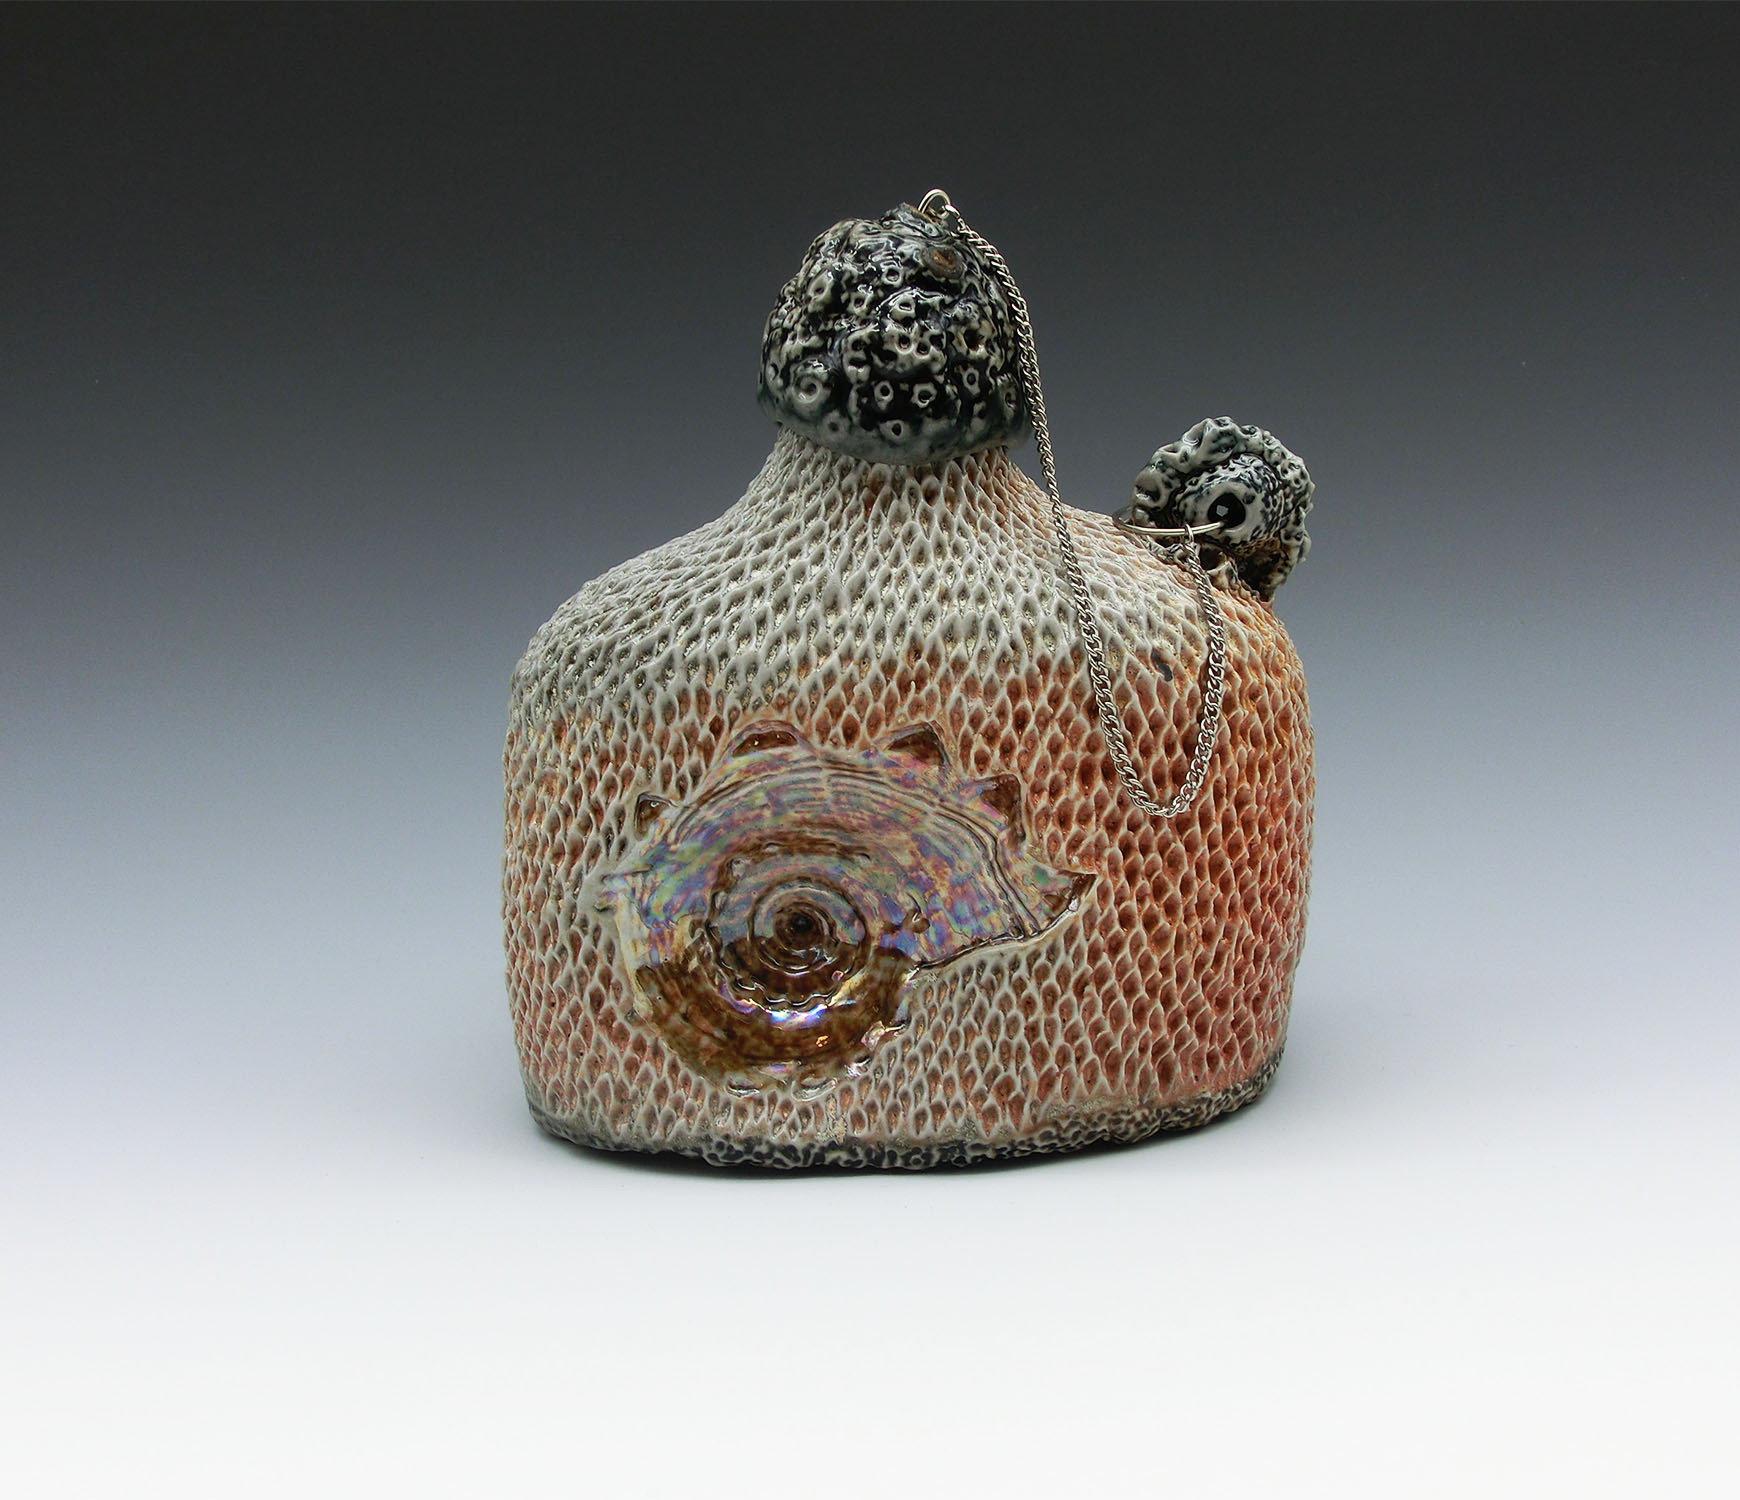 Siren's Vice 3, Domestic porcelain, black slip, mason stain, mother of pearl luster, glaze, cone 10 atmospheric fired, chain, 5x5x2.5, 2020